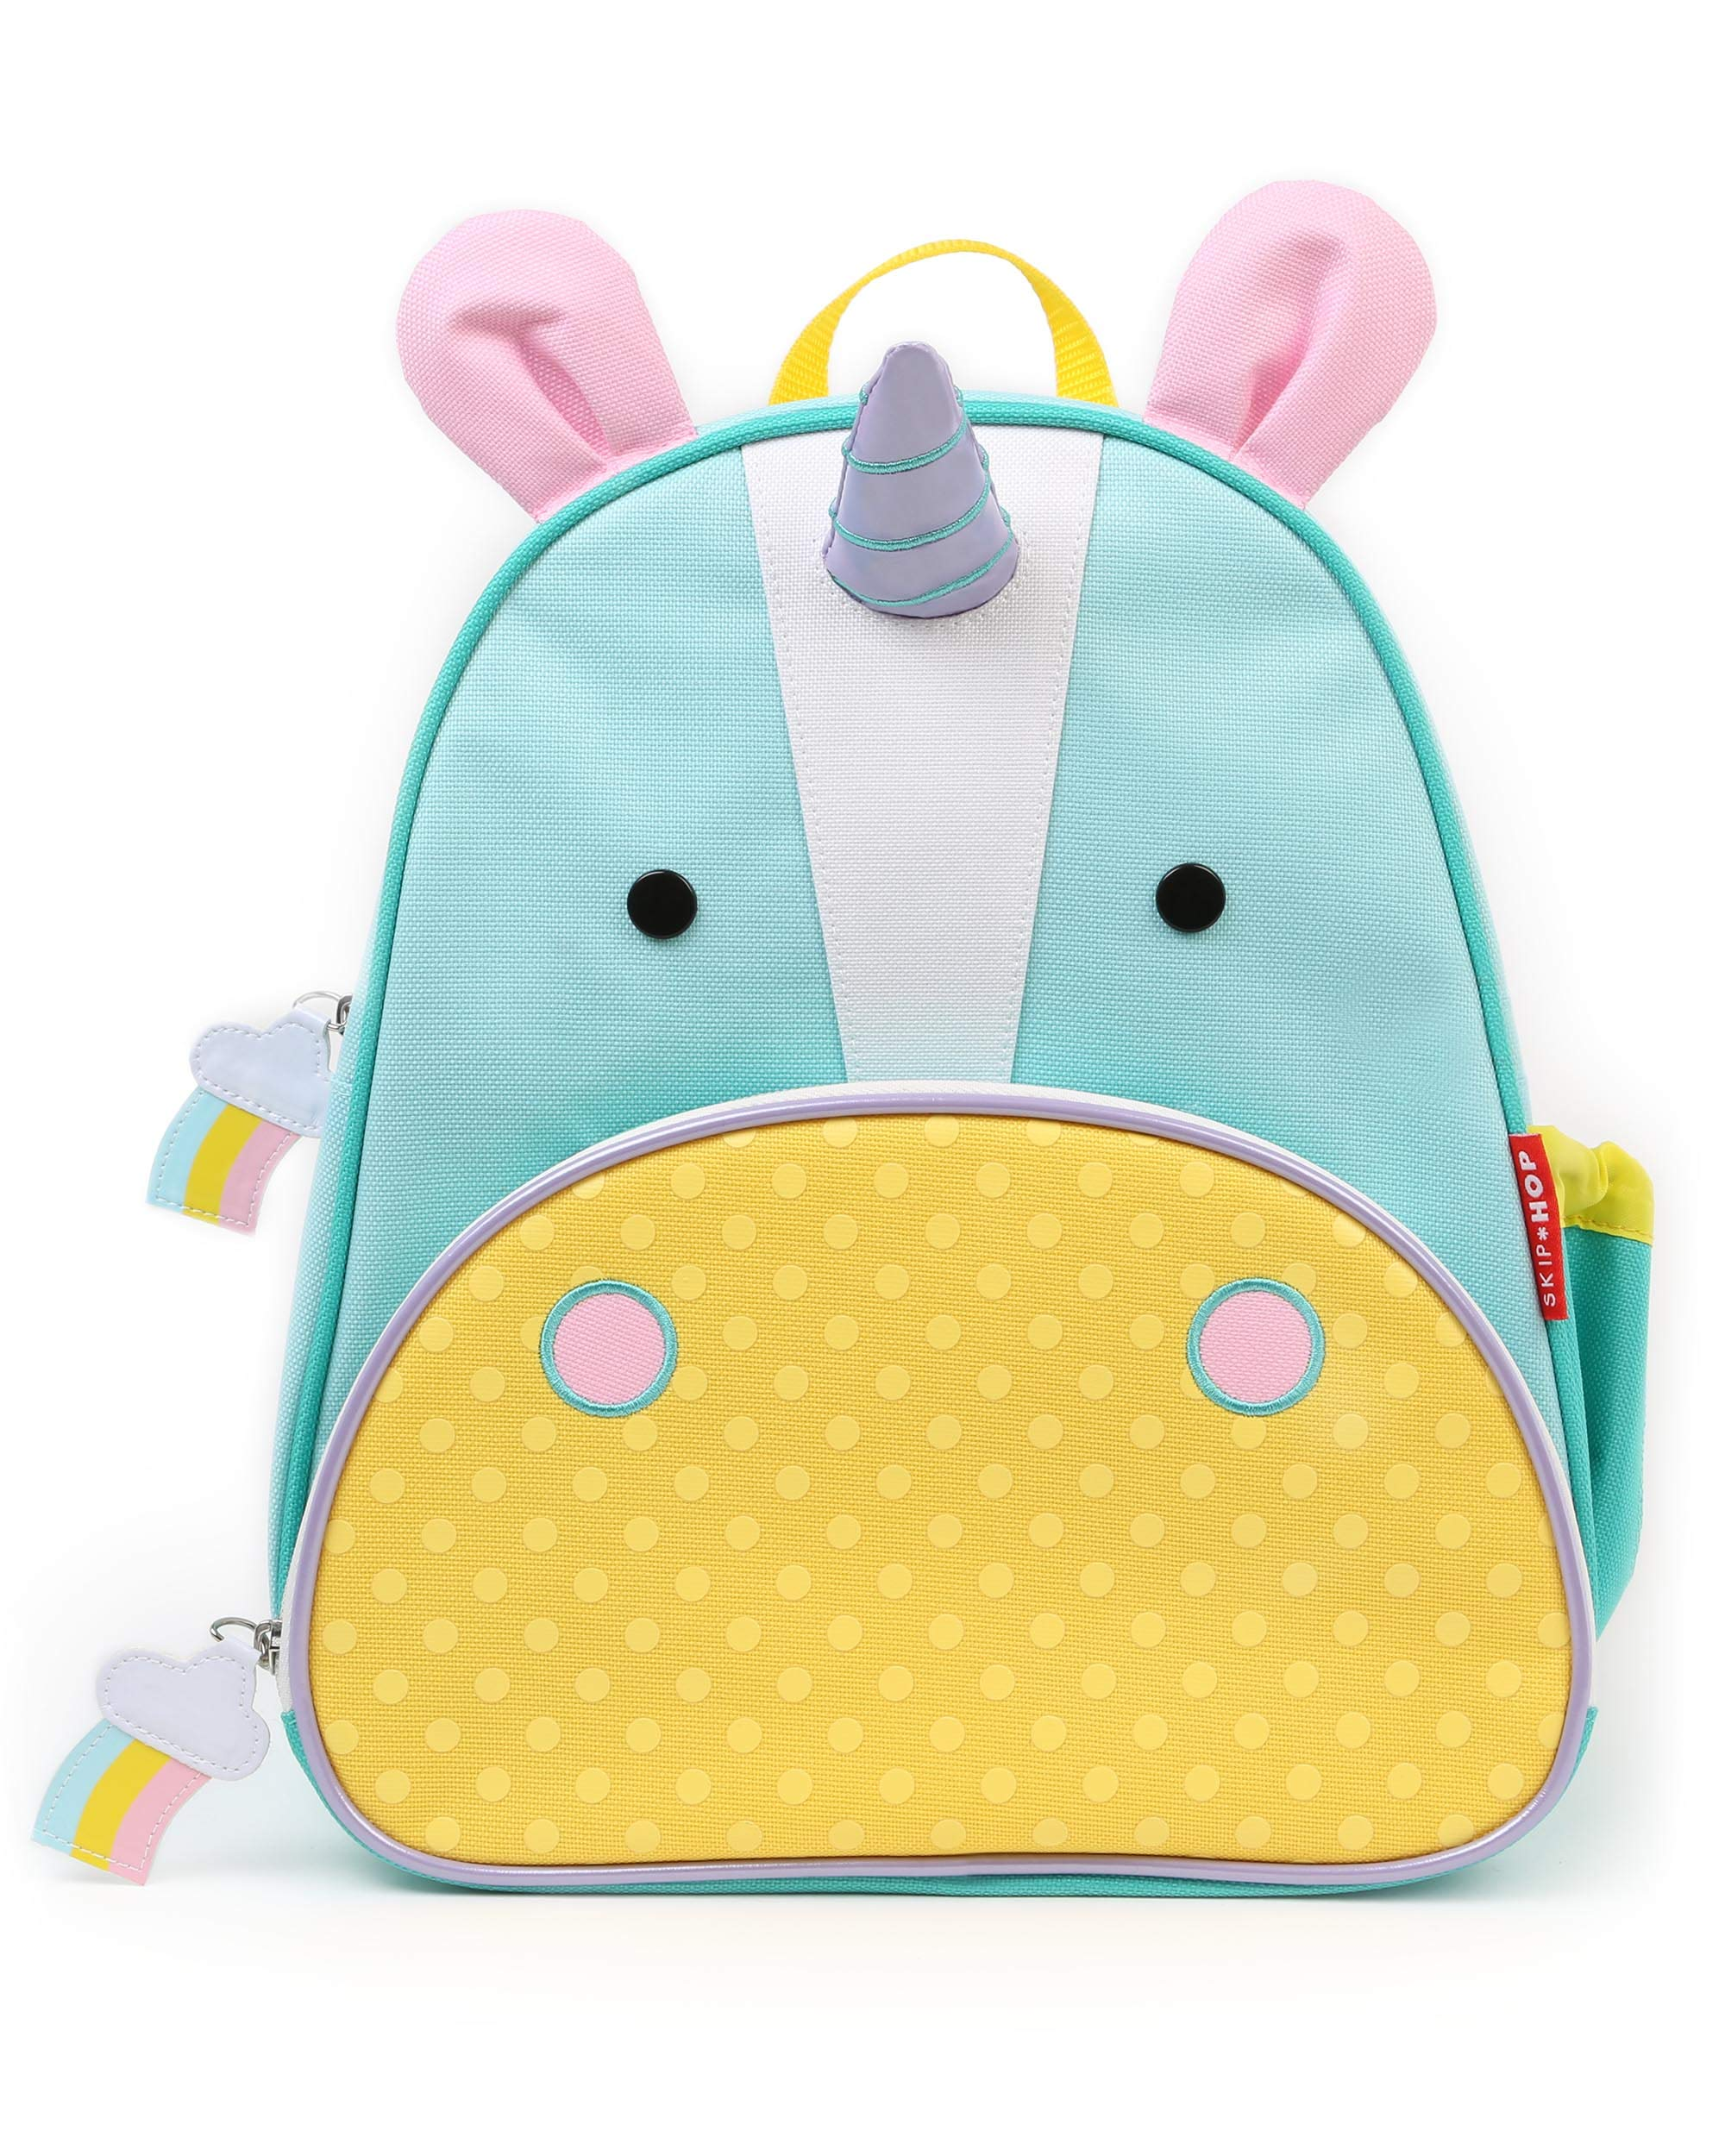 Skip Hop Toddler Backpack, 12'' Unicorn School Bag, Multi by Skip Hop